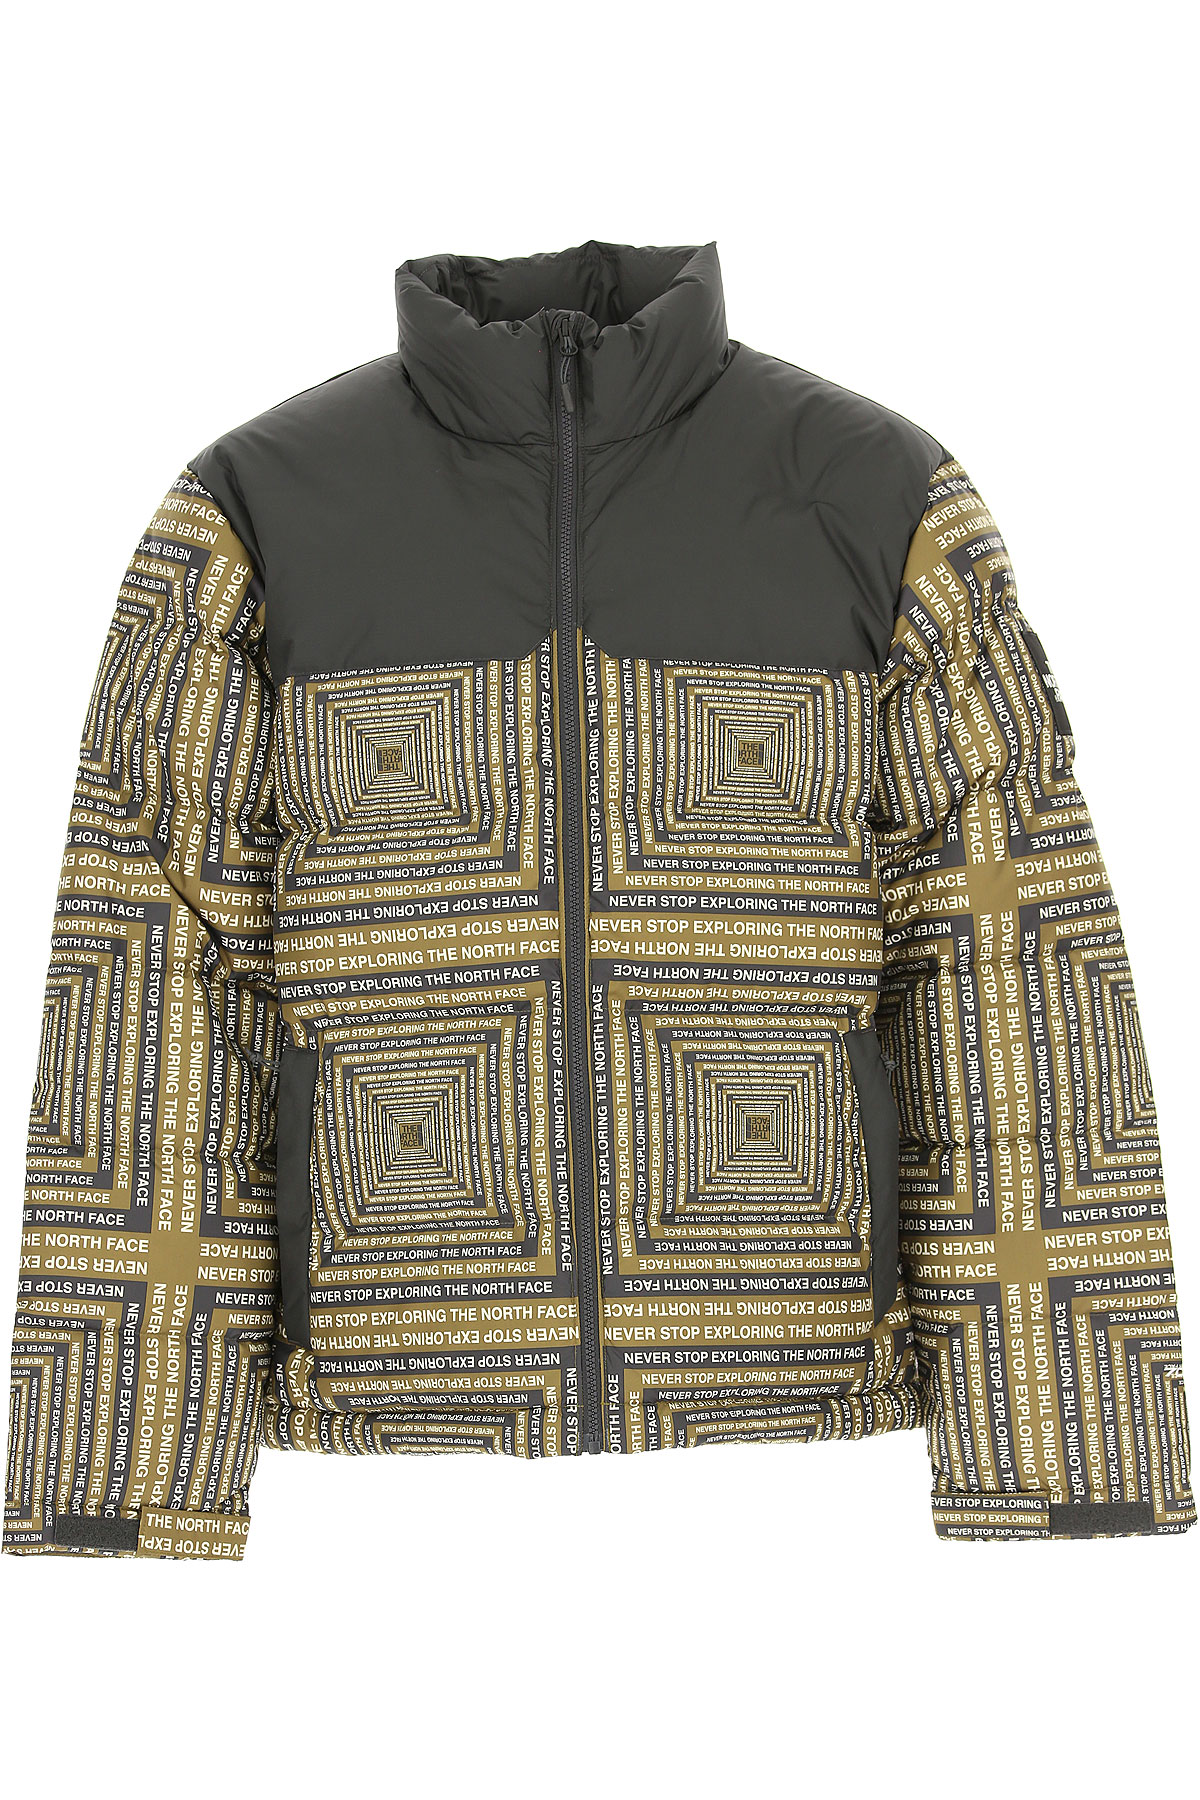 Image of The North Face Down Jacket for Men, Puffer Ski Jacket, Multicolor, polyester, 2017, L M S XL